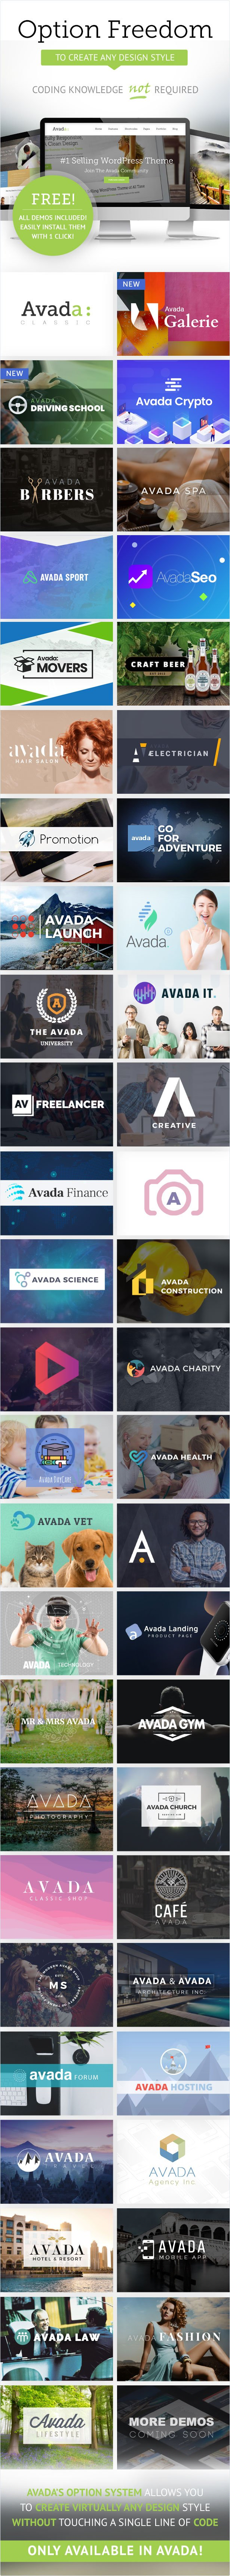 Avada | Responsive Multi-Purpose Theme - 10